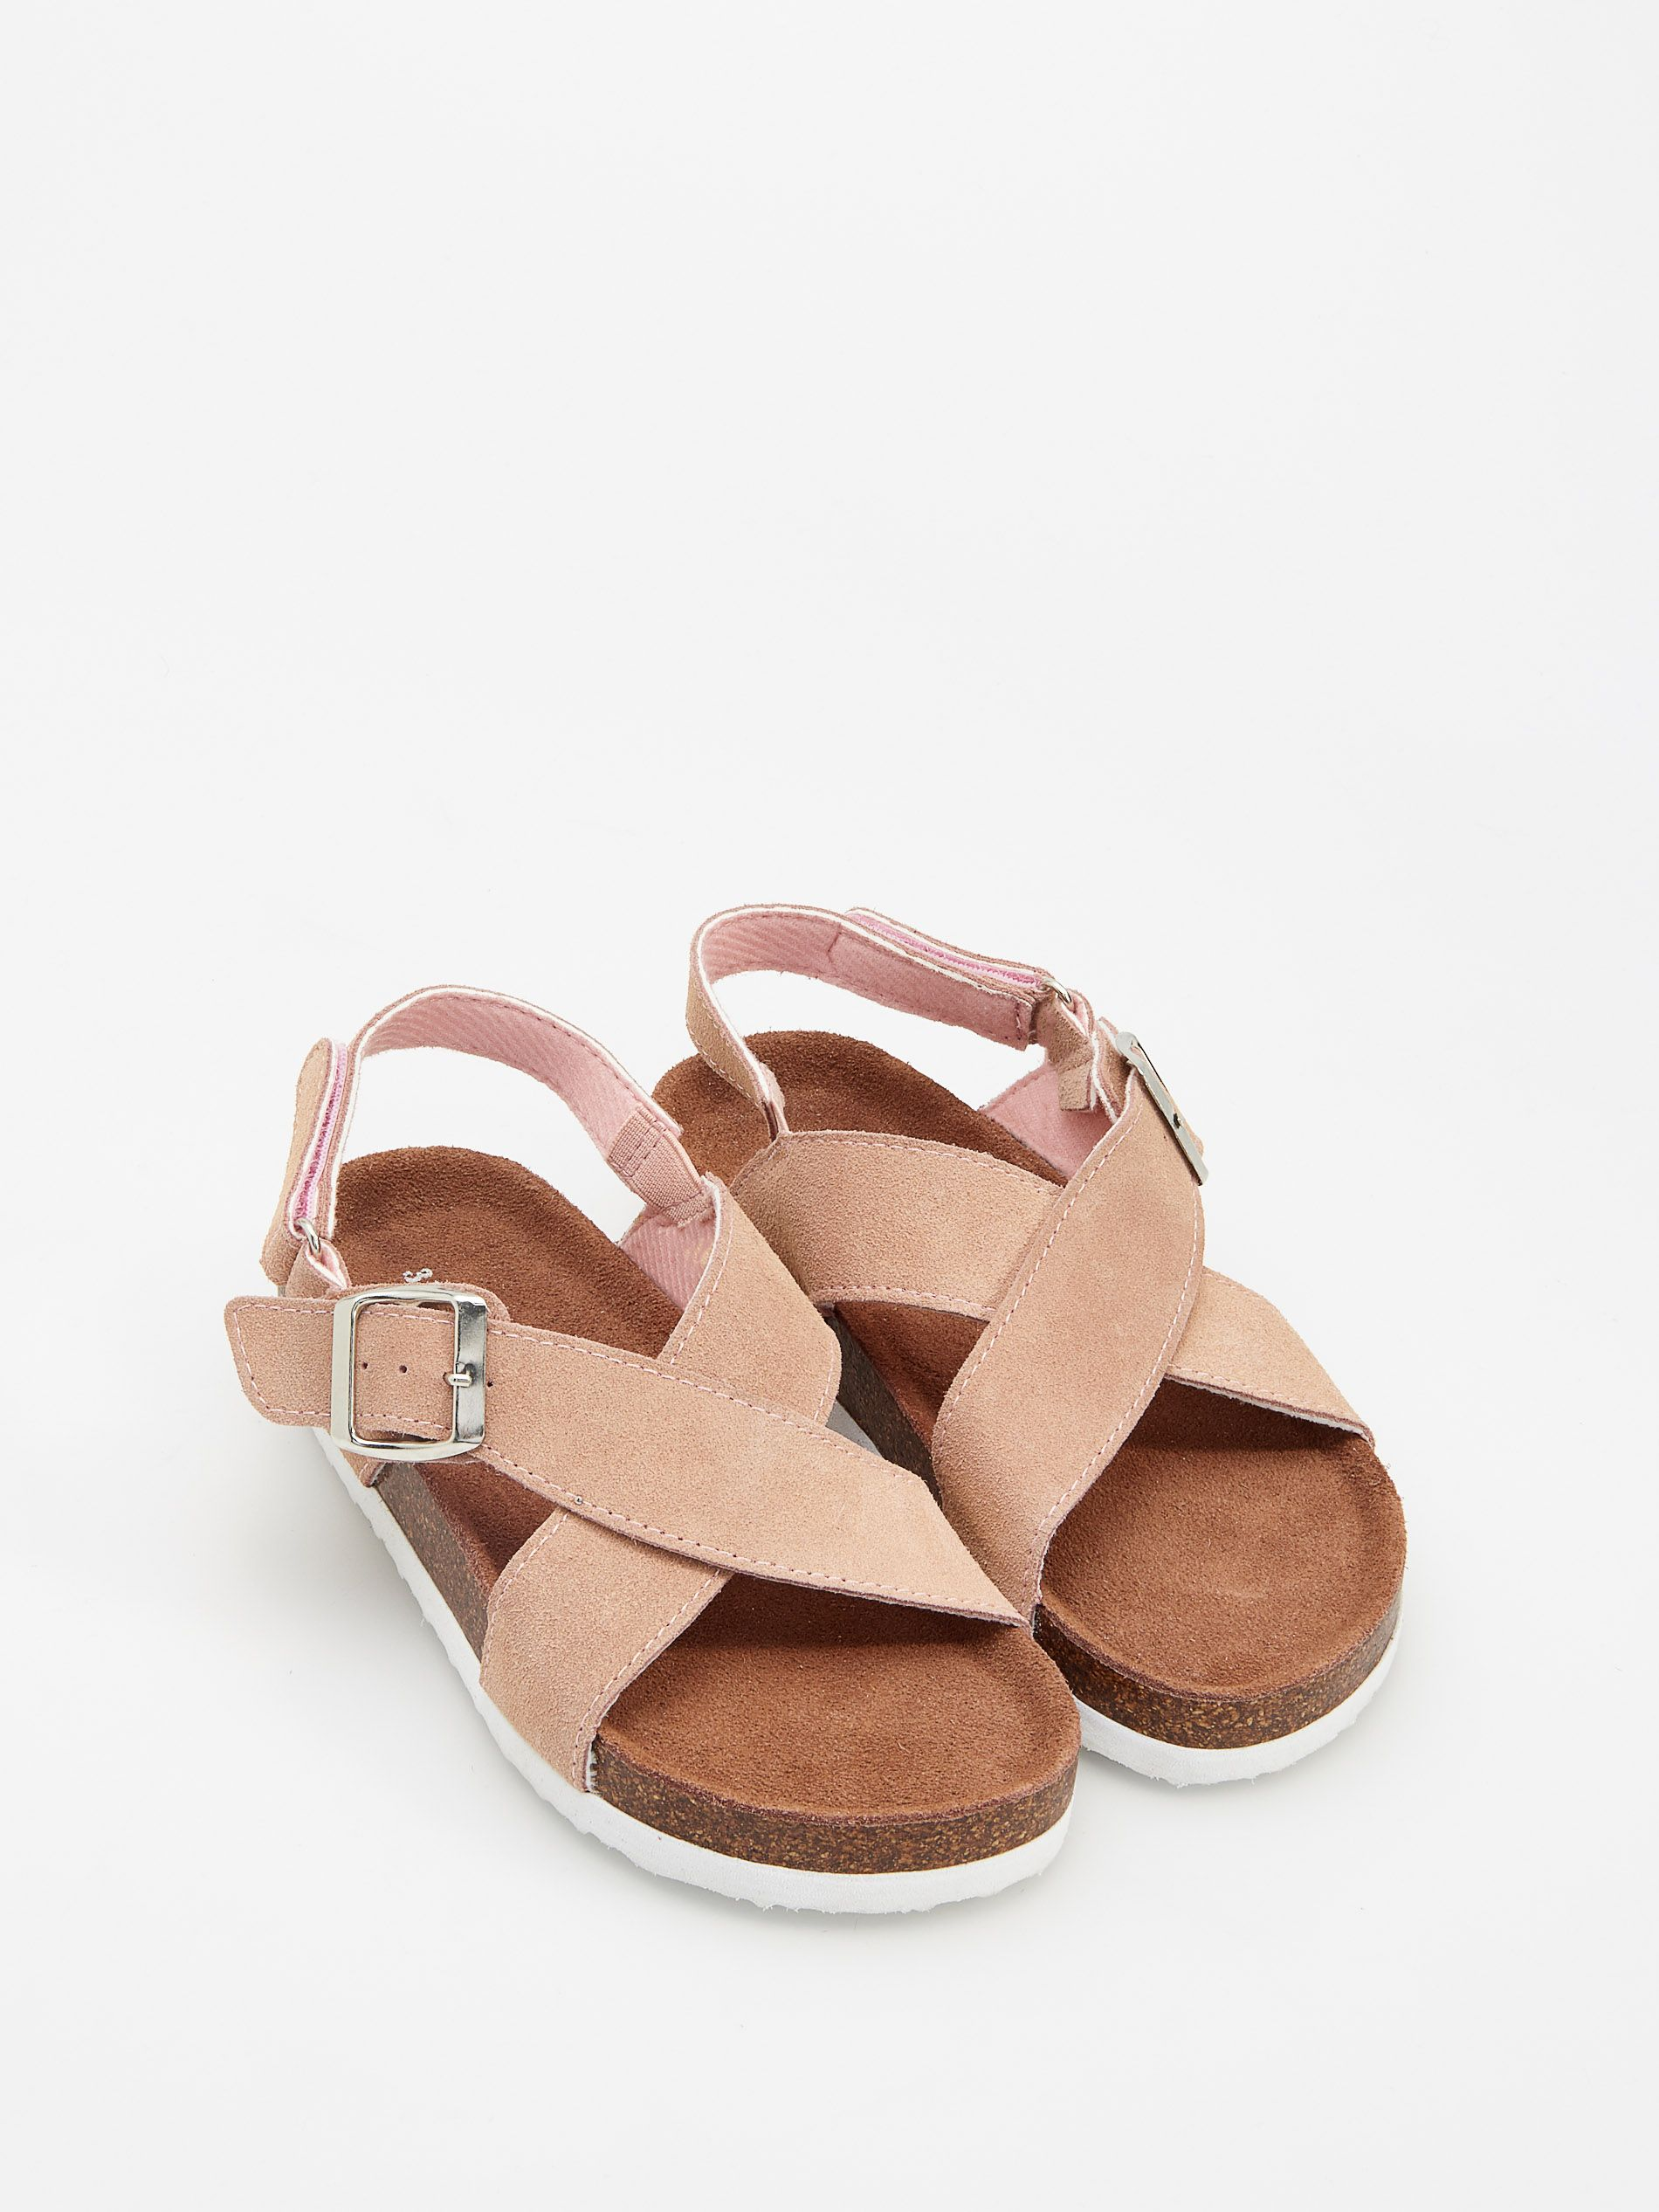 Skorzane Sandaly Reserved Vh040 03x Leather Sandals Baby Shoes Leather